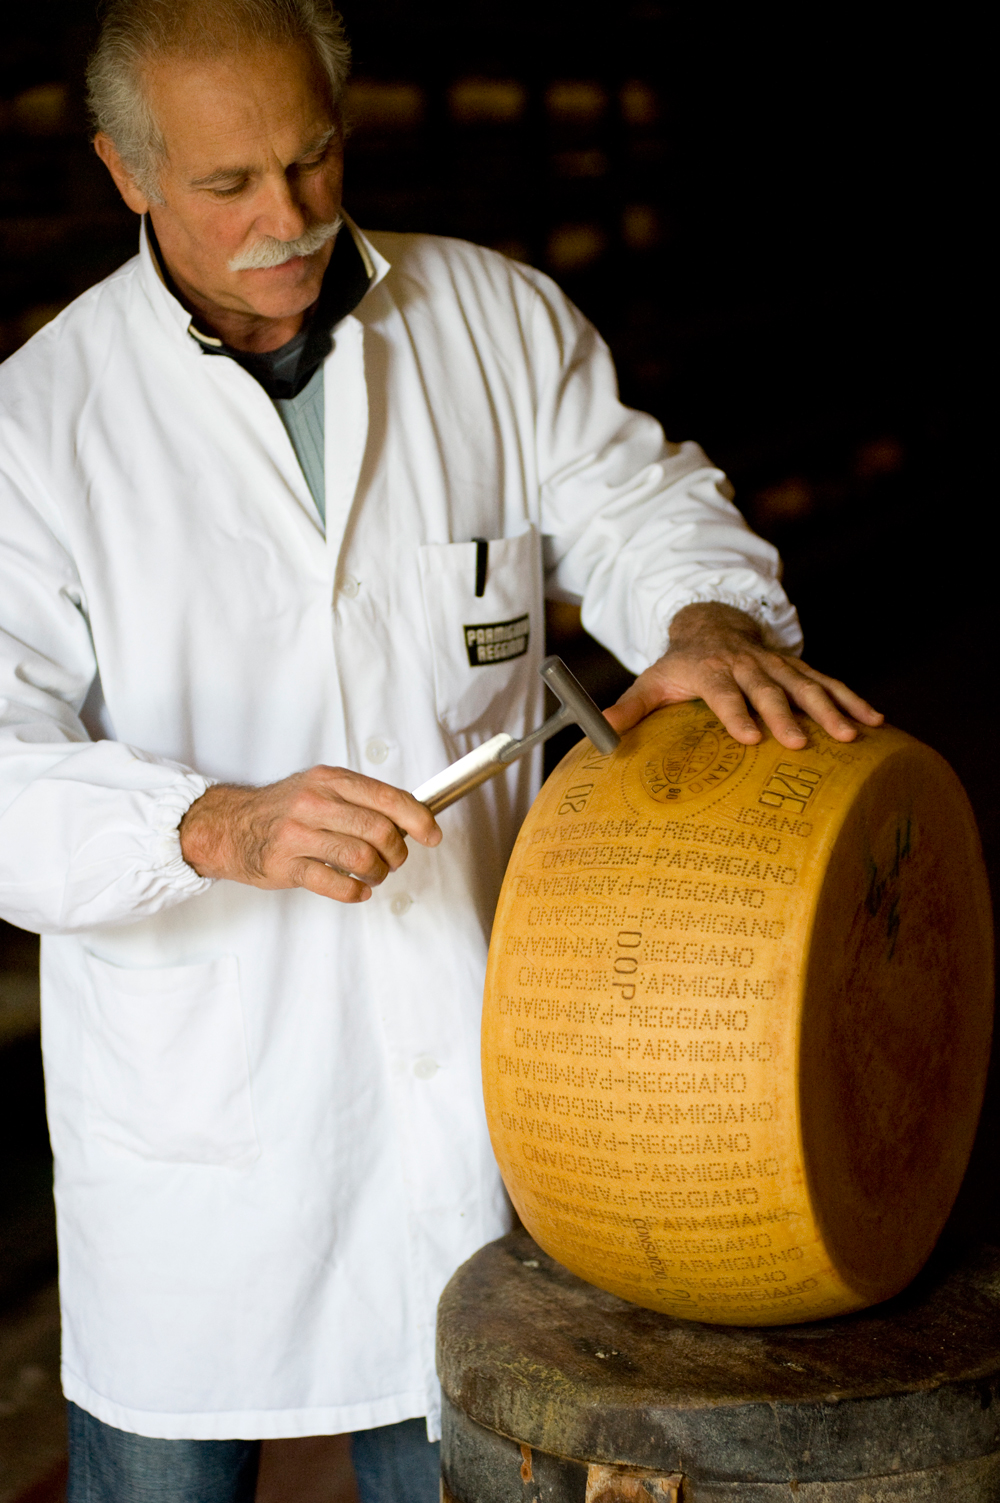 Parmigiano Reggiano cheese maker with cheese